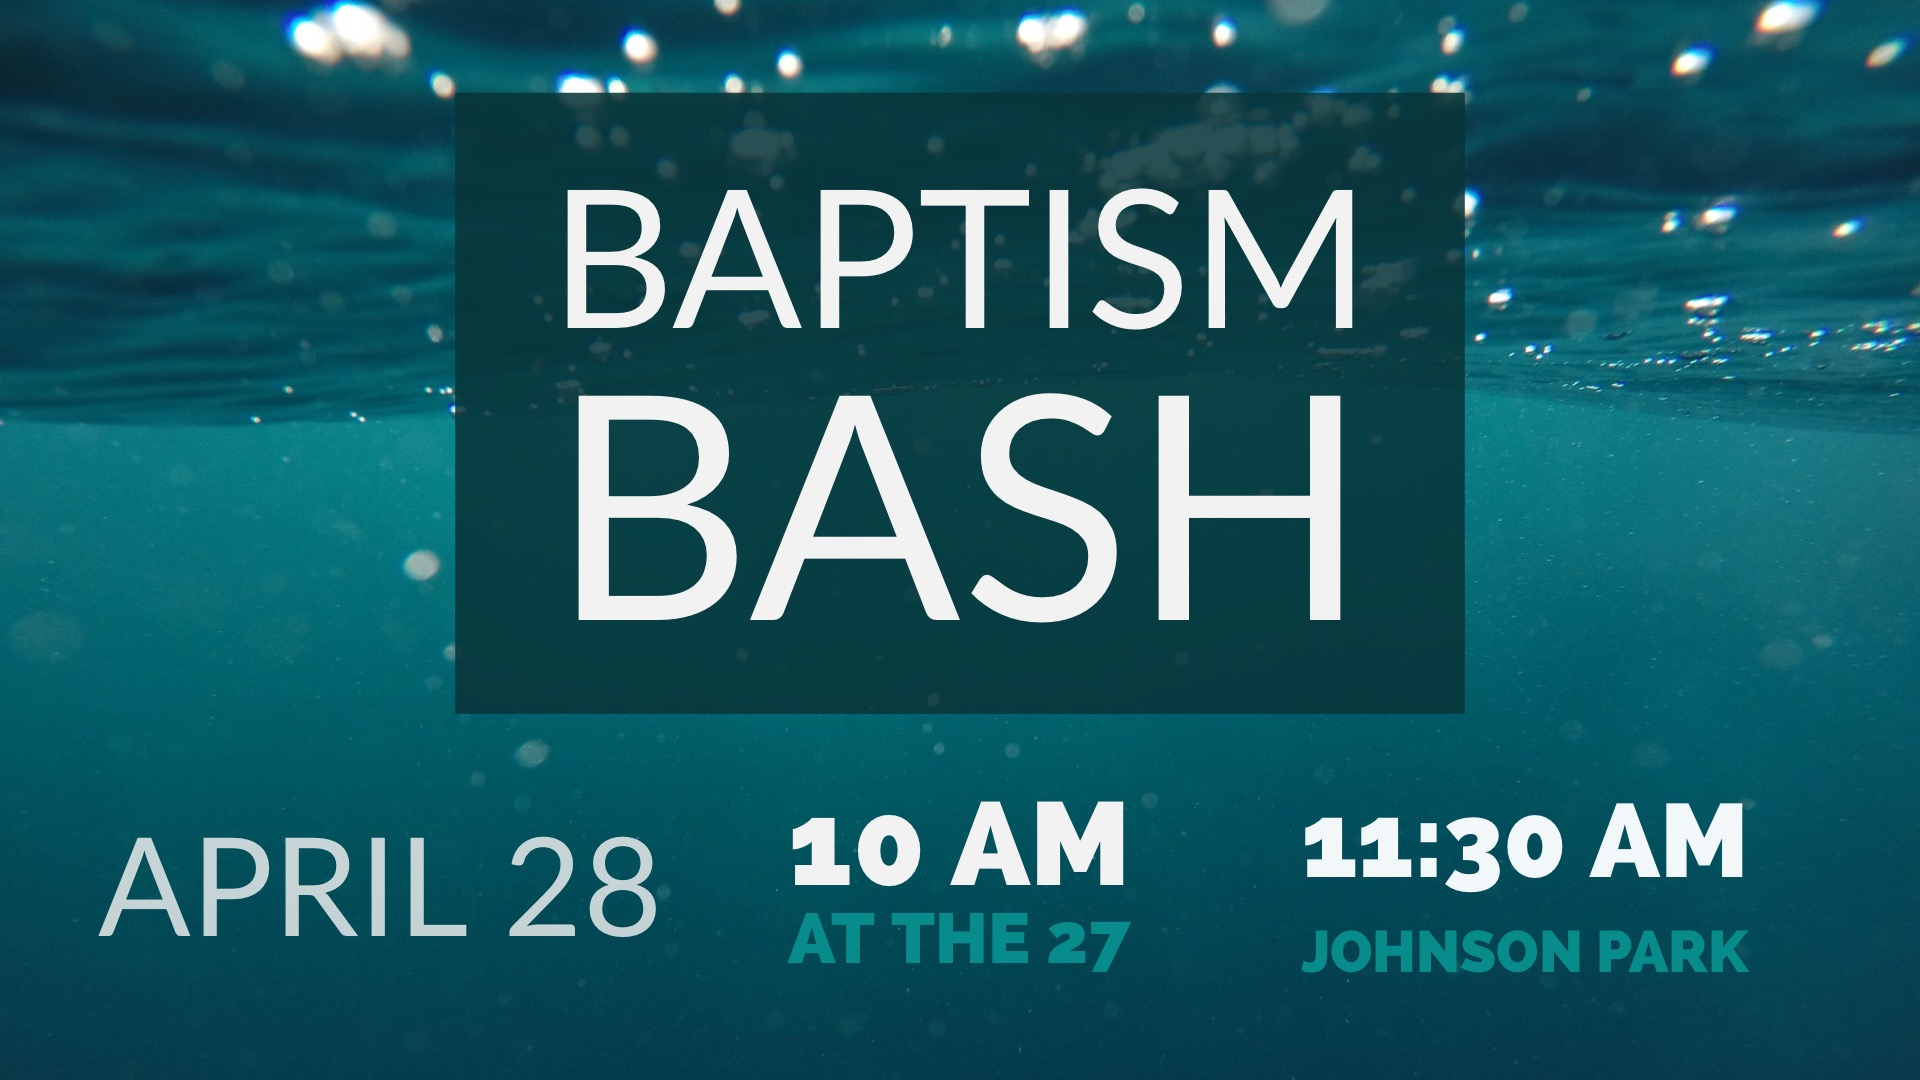 baptism bash gathering space image